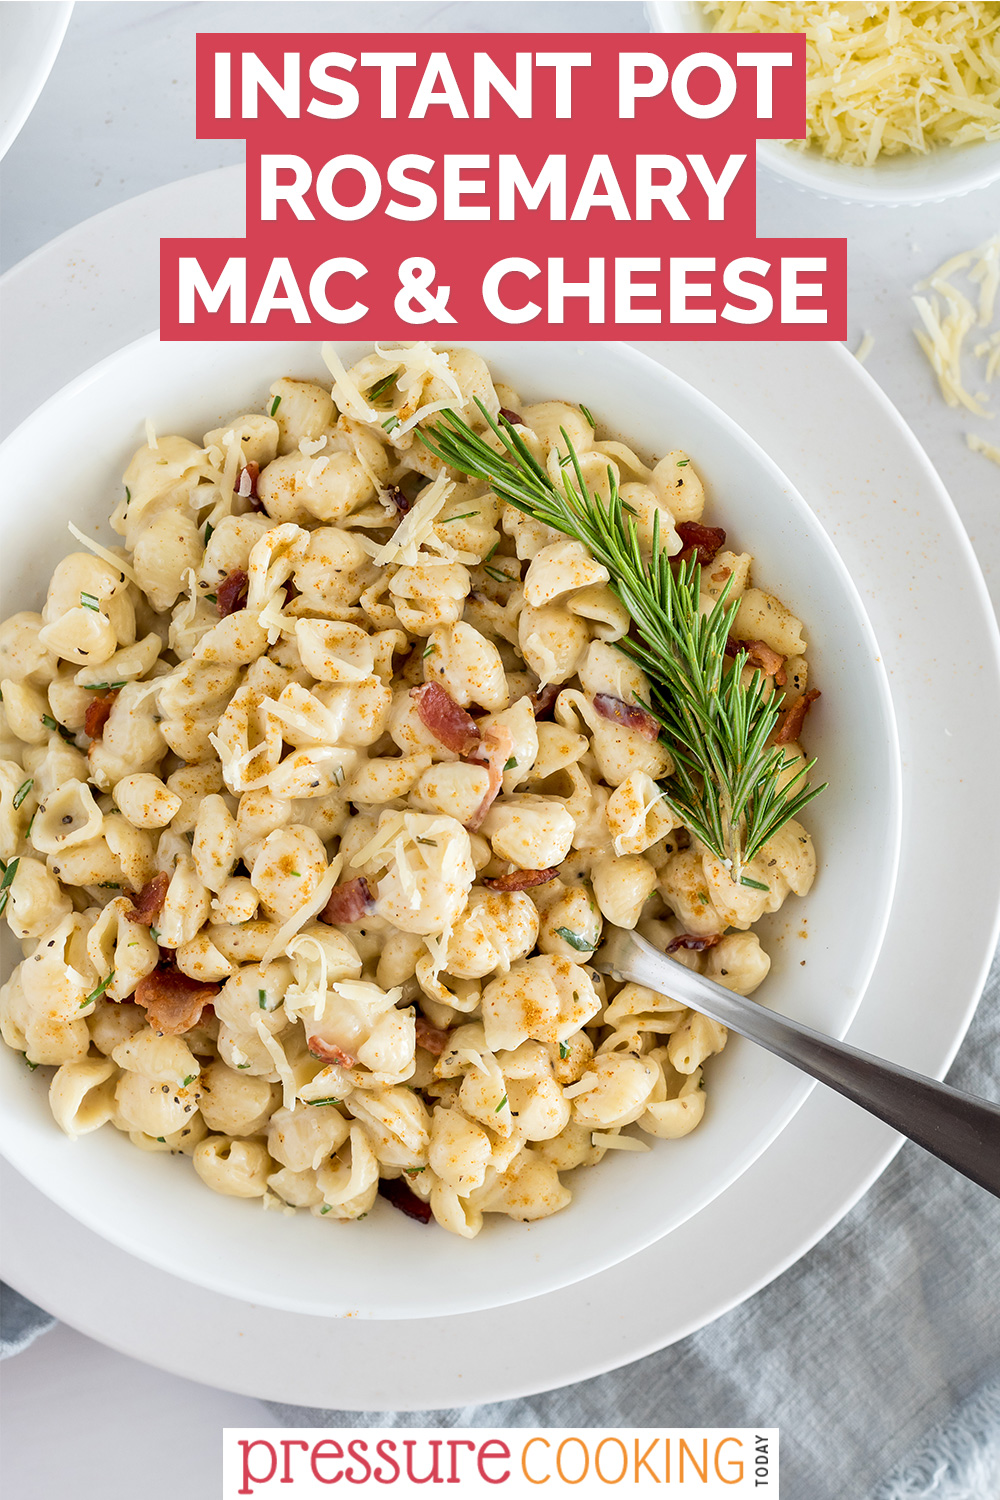 Instant Pot Mac and Cheese made with rosemary and bacon is an easy meal for grown-up tastes with Gruyere cheese, fresh herbs, and bacon on top. Plus your kids will love it too! via @PressureCook2da